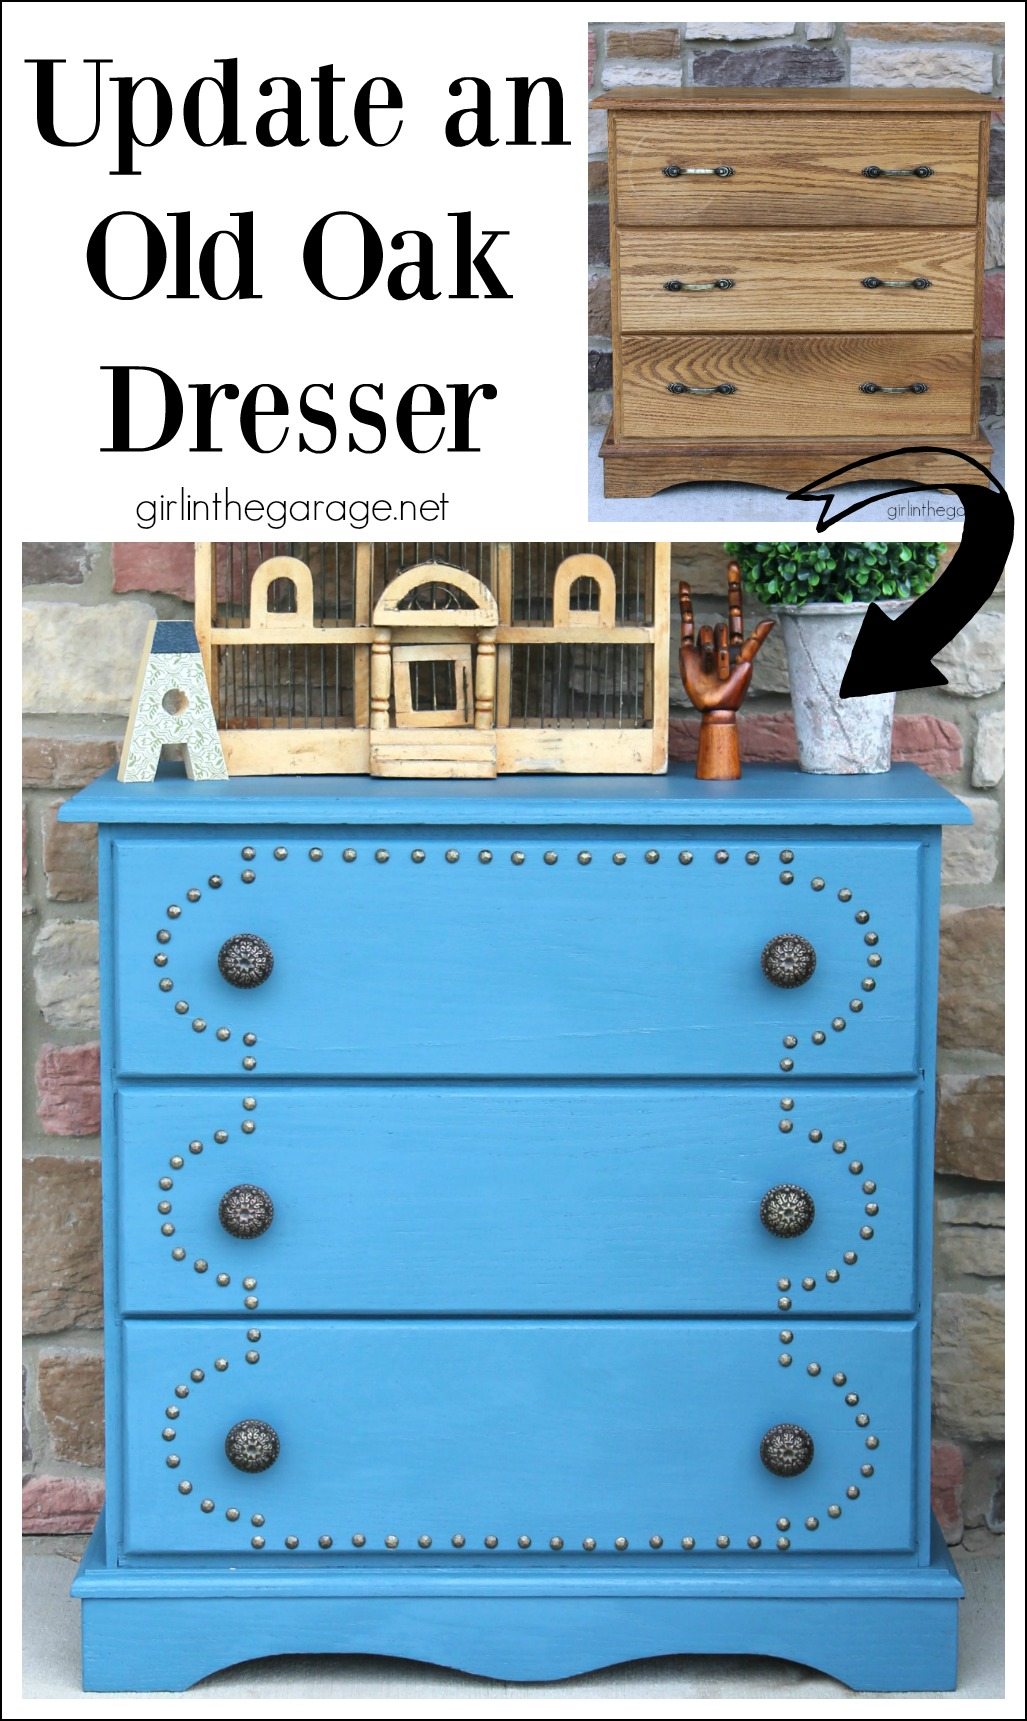 How to Update an Old Oak Dresser - girlinthegarage.net